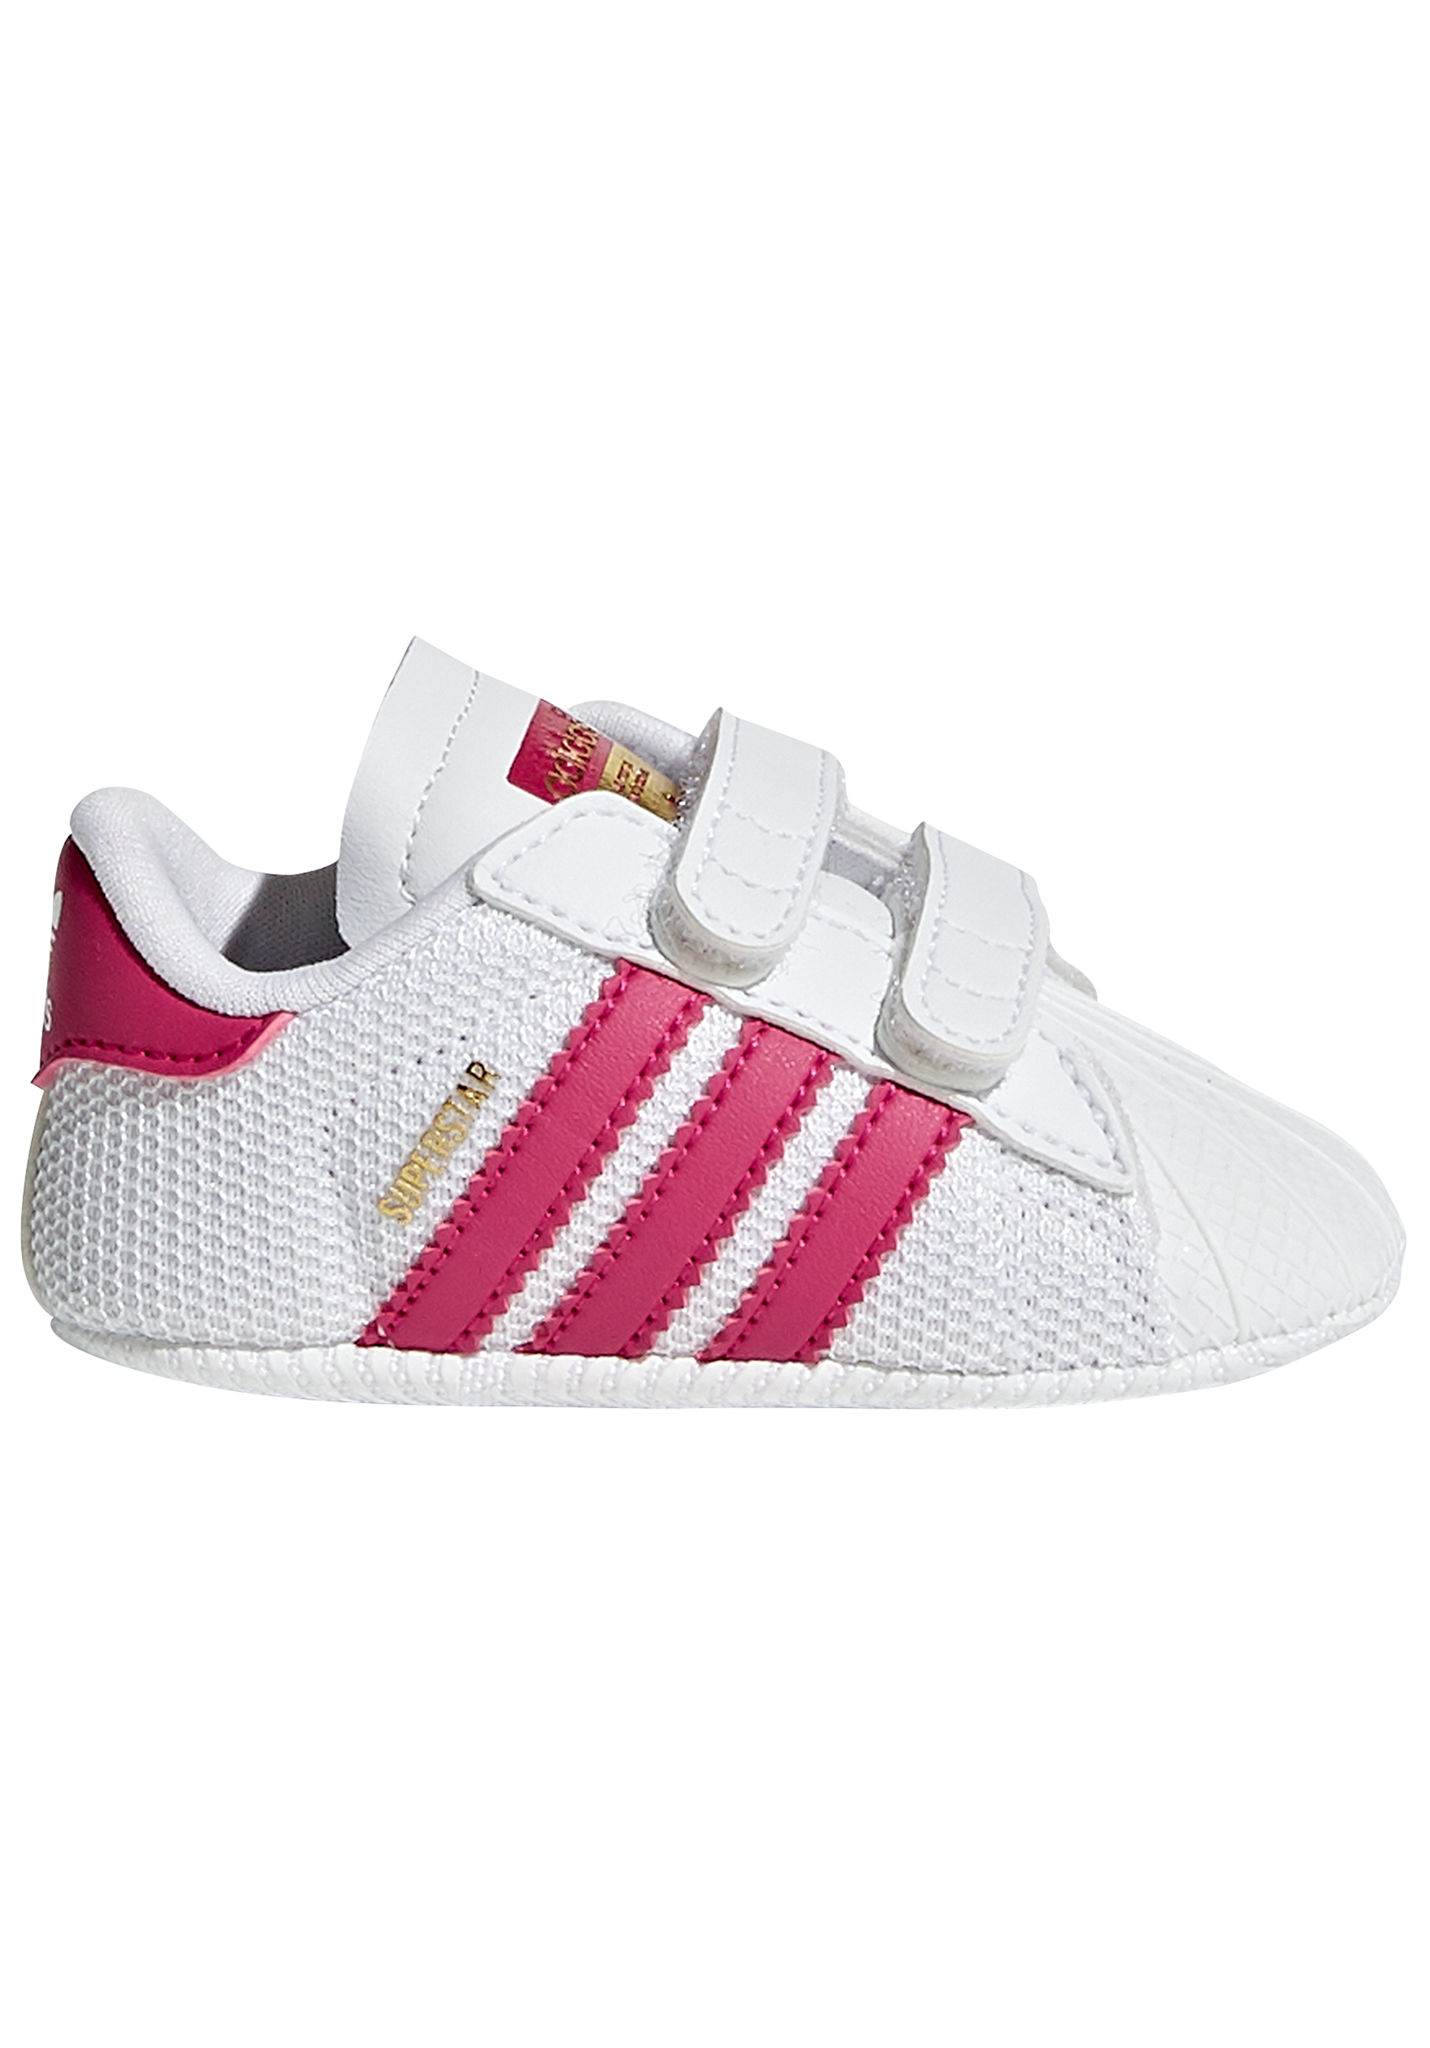 ADIDAS ORIGINALS Superstar Crib - Sneakers - White - Planet Sports 2cbee4dccb0